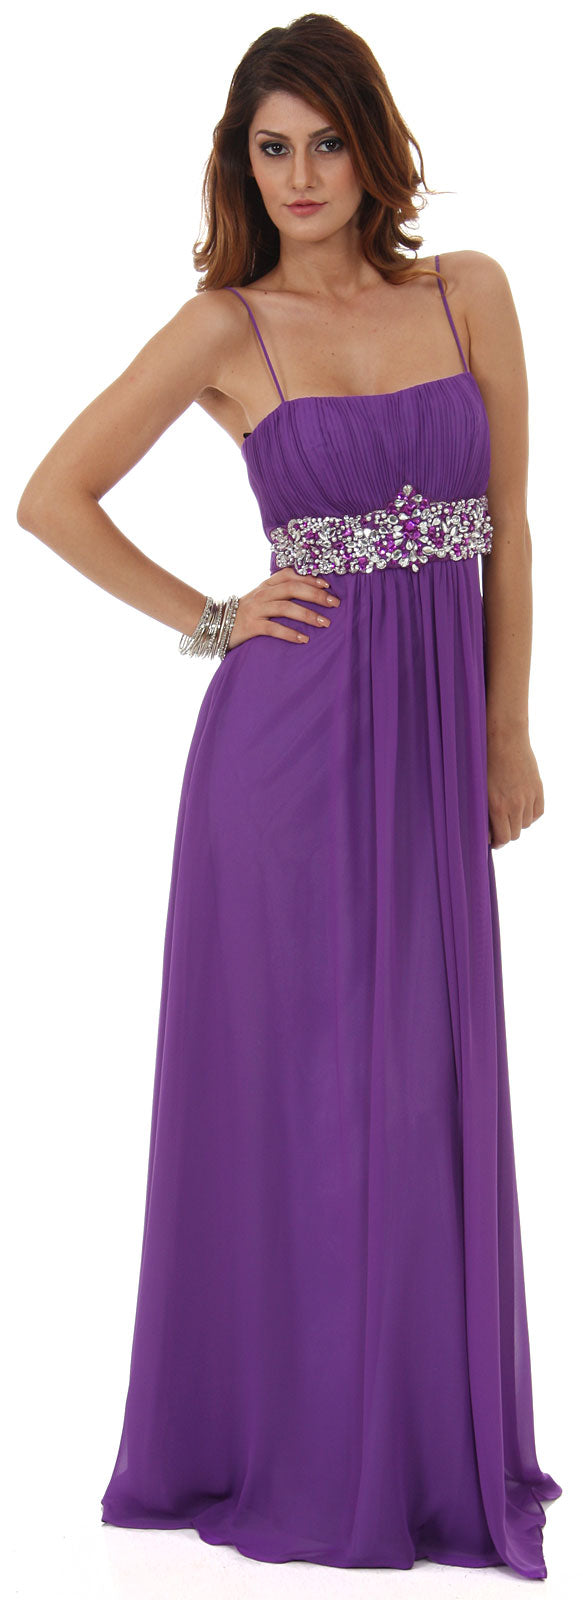 Image of Empire Cut Long Formal Dress With Bejeweled Waist in Violet